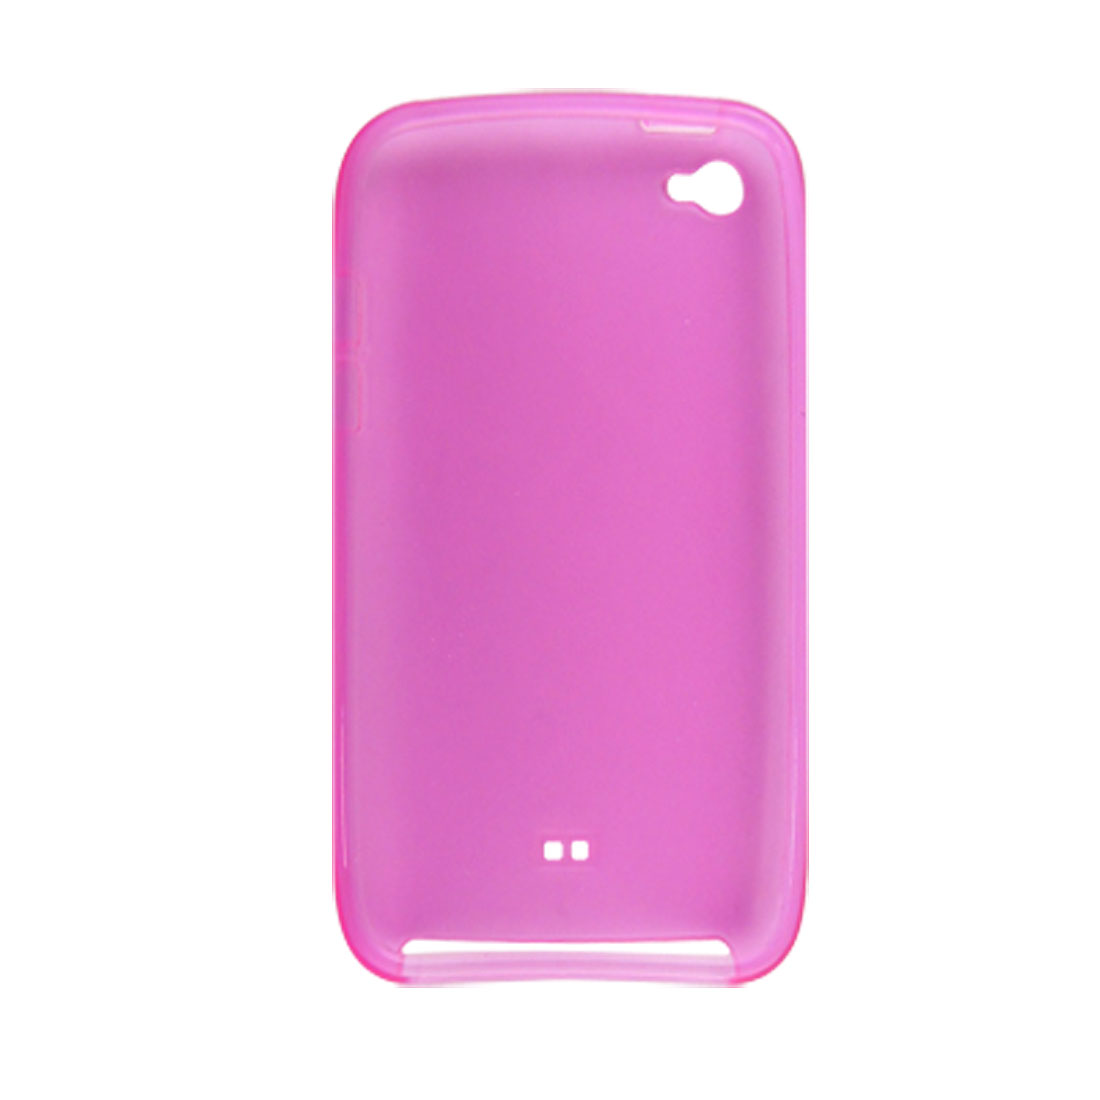 Fuchsia Soft Plastic Cover Case for iPod Touch 4G